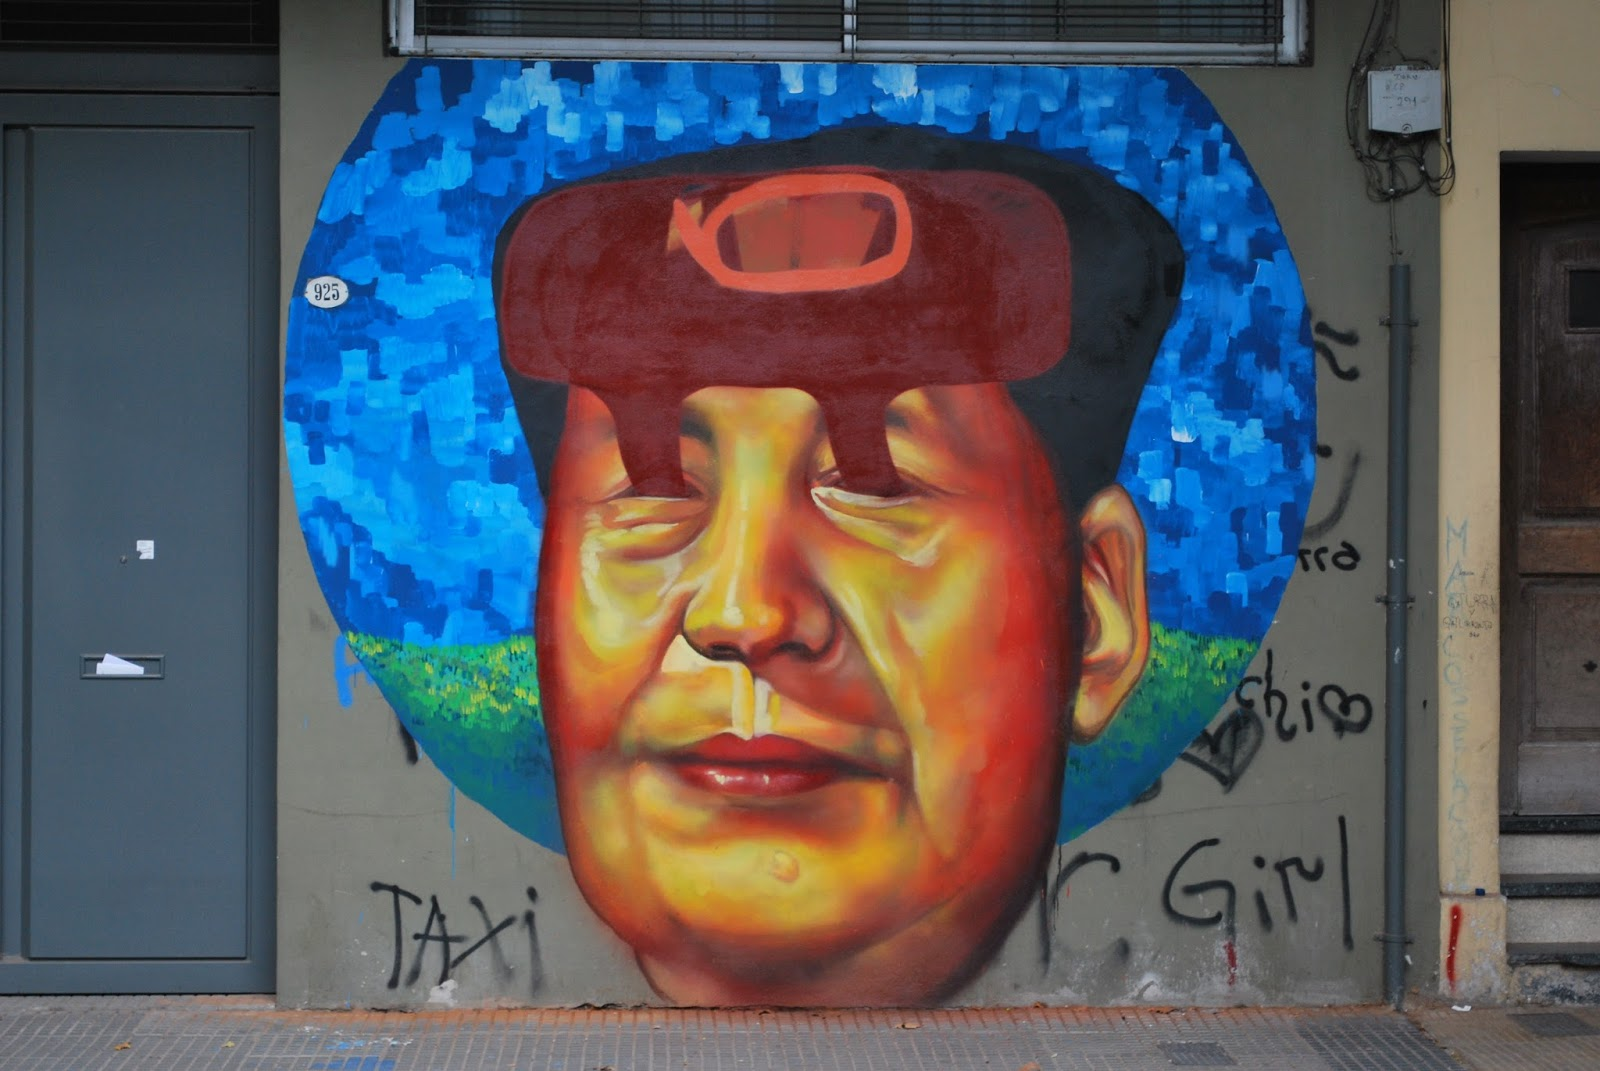 Grafite do antigo ditador da República Popular da China, Mao Tsé Tung